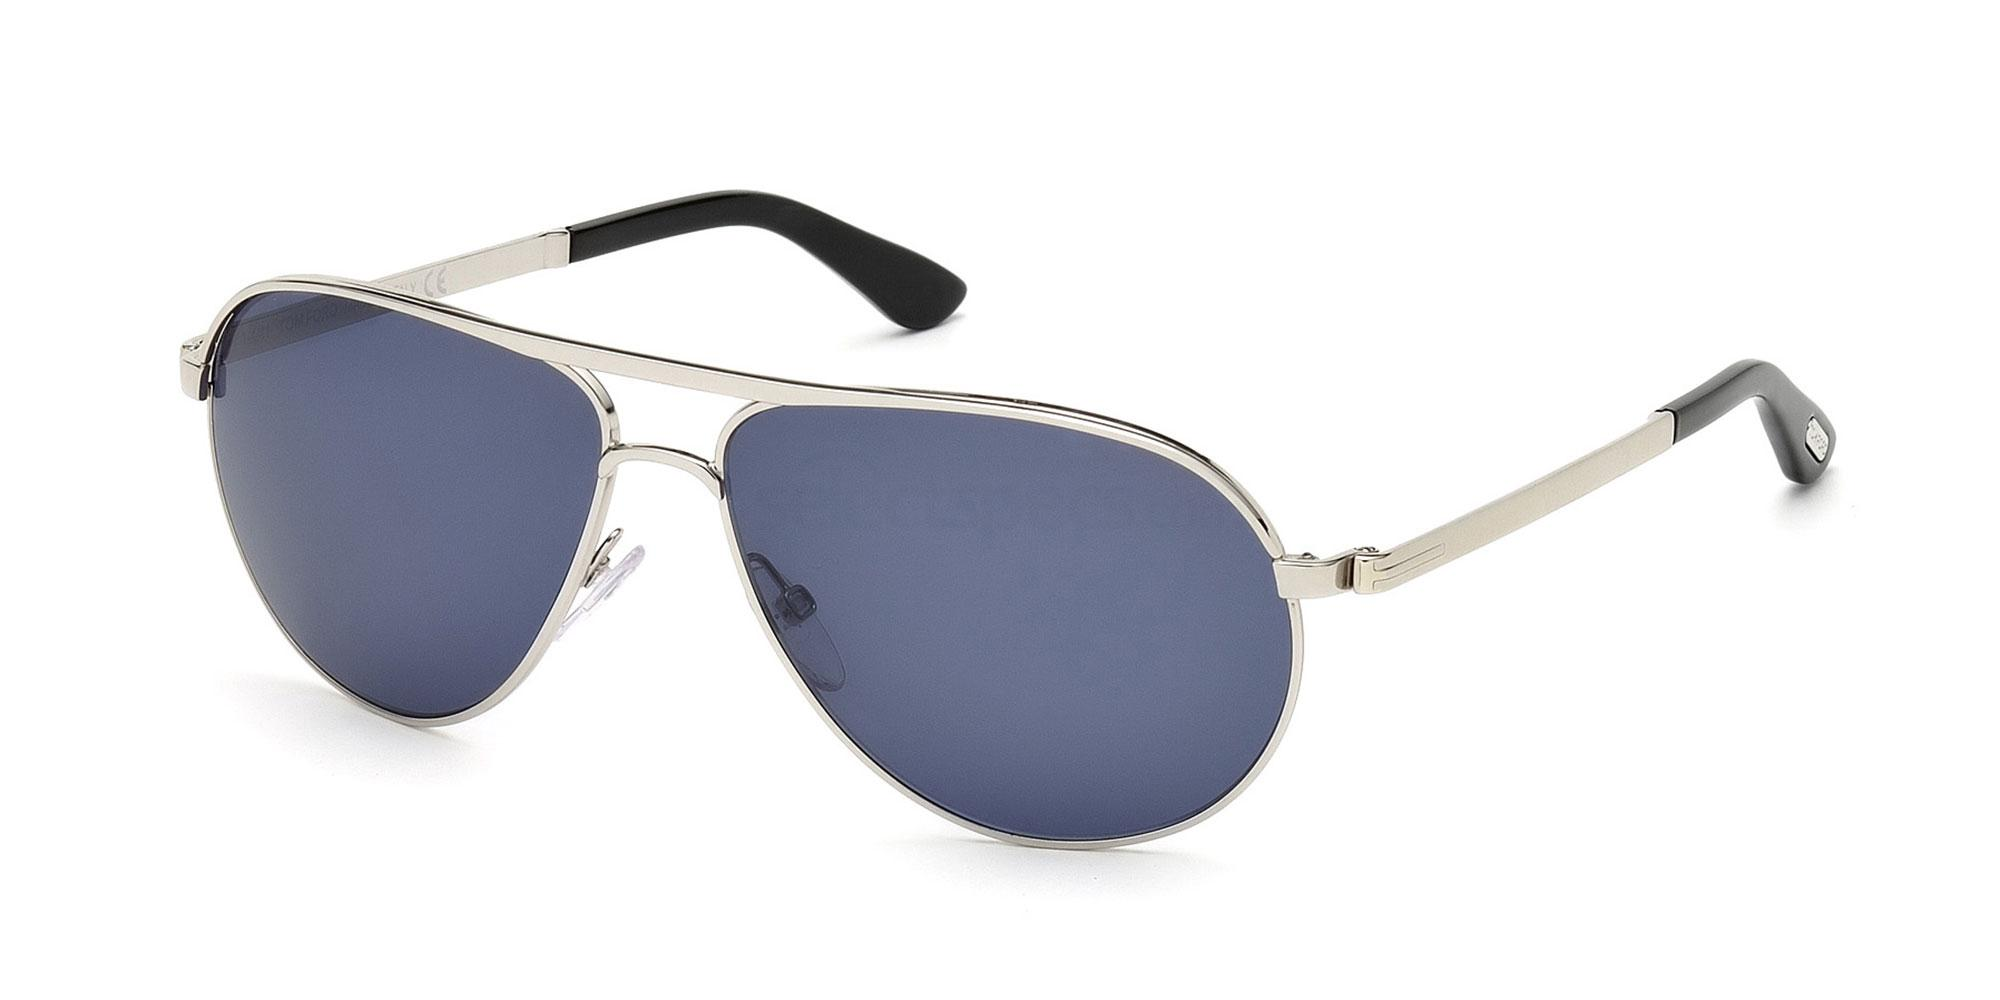 18V FT0144 Marko Sunglasses, Tom Ford